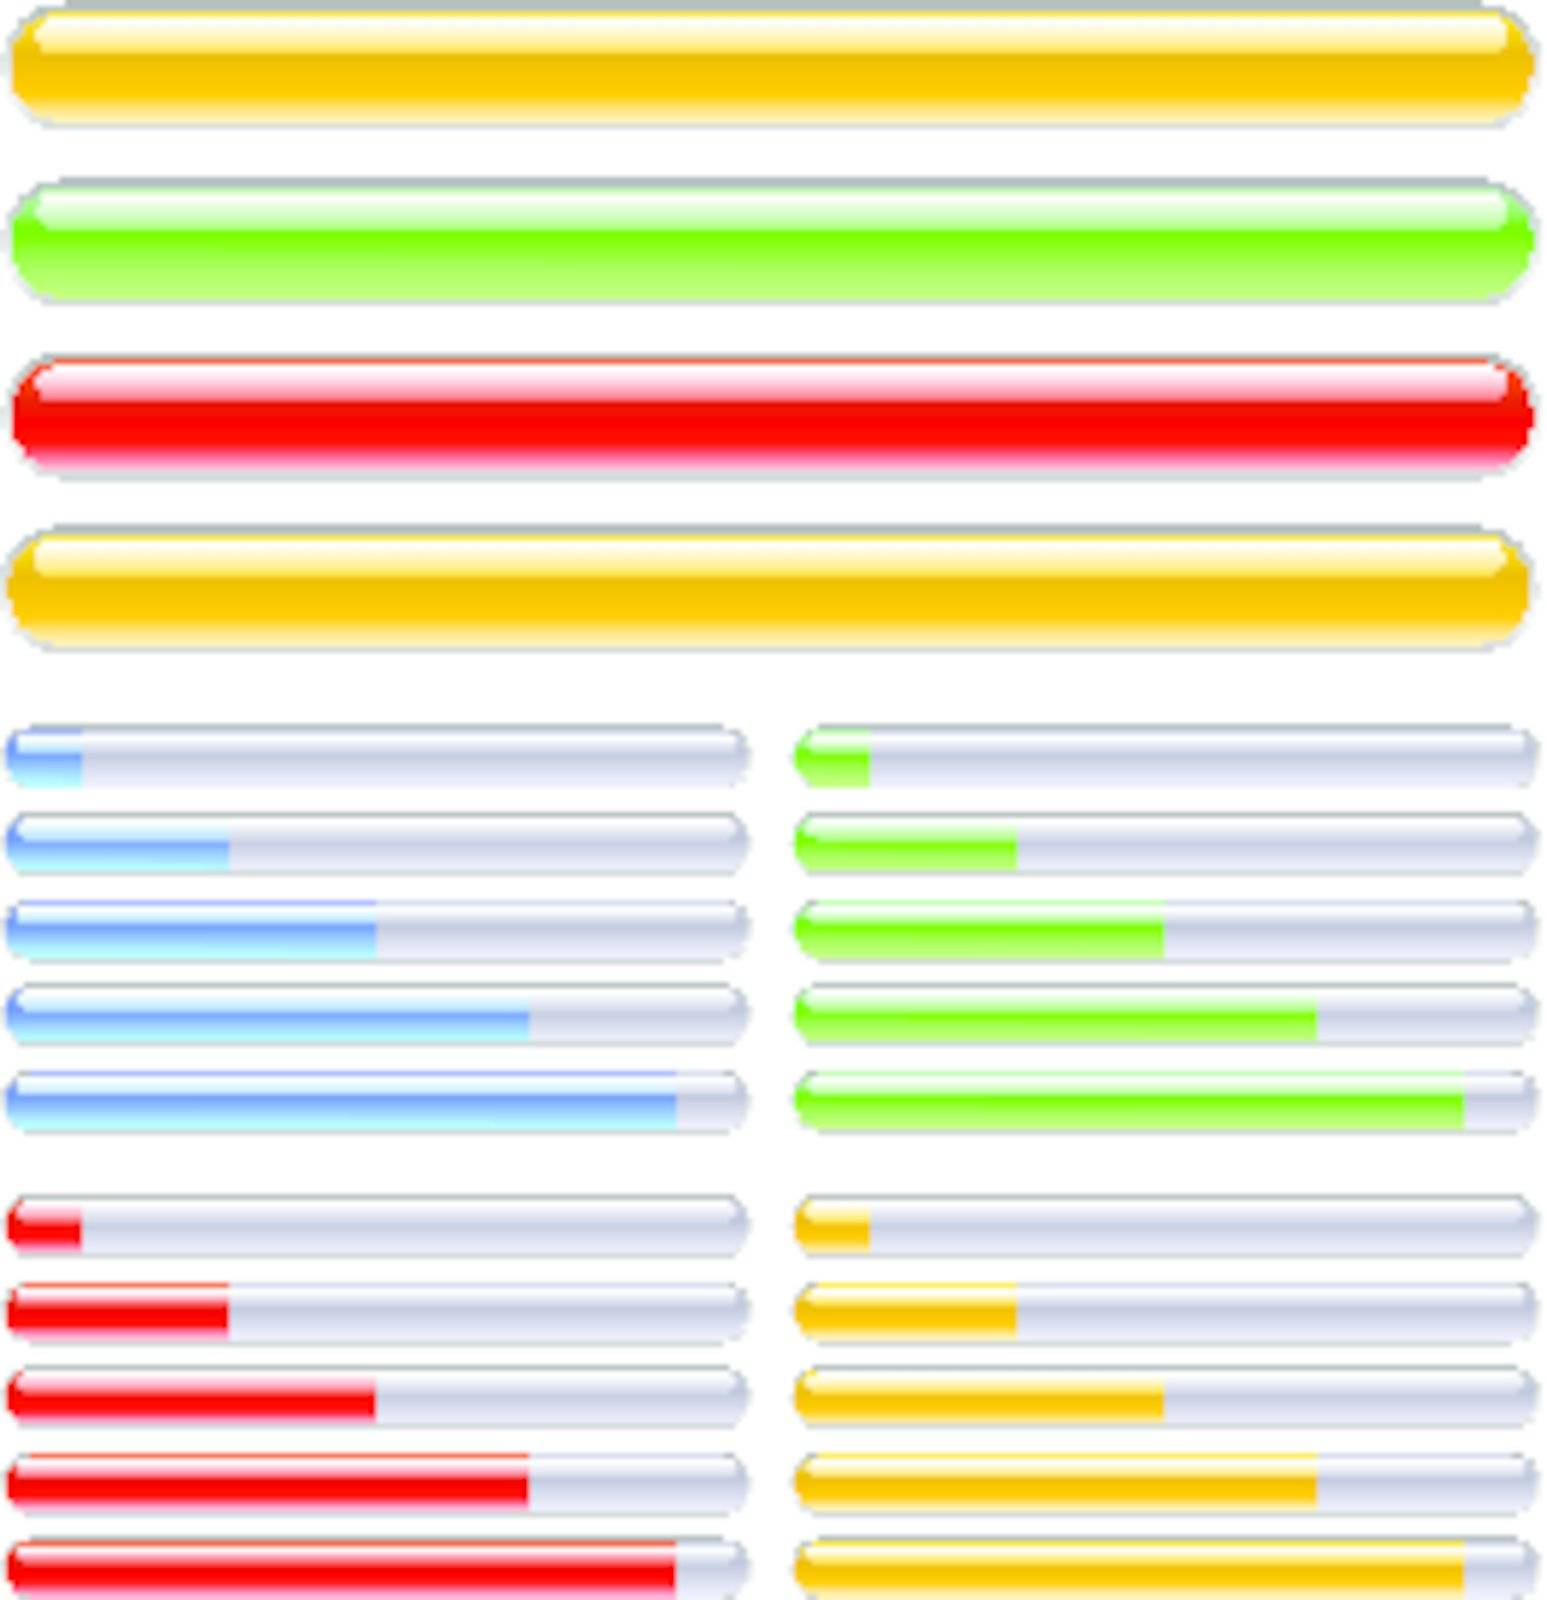 Indicator of progress in different colors. Illustration on white background